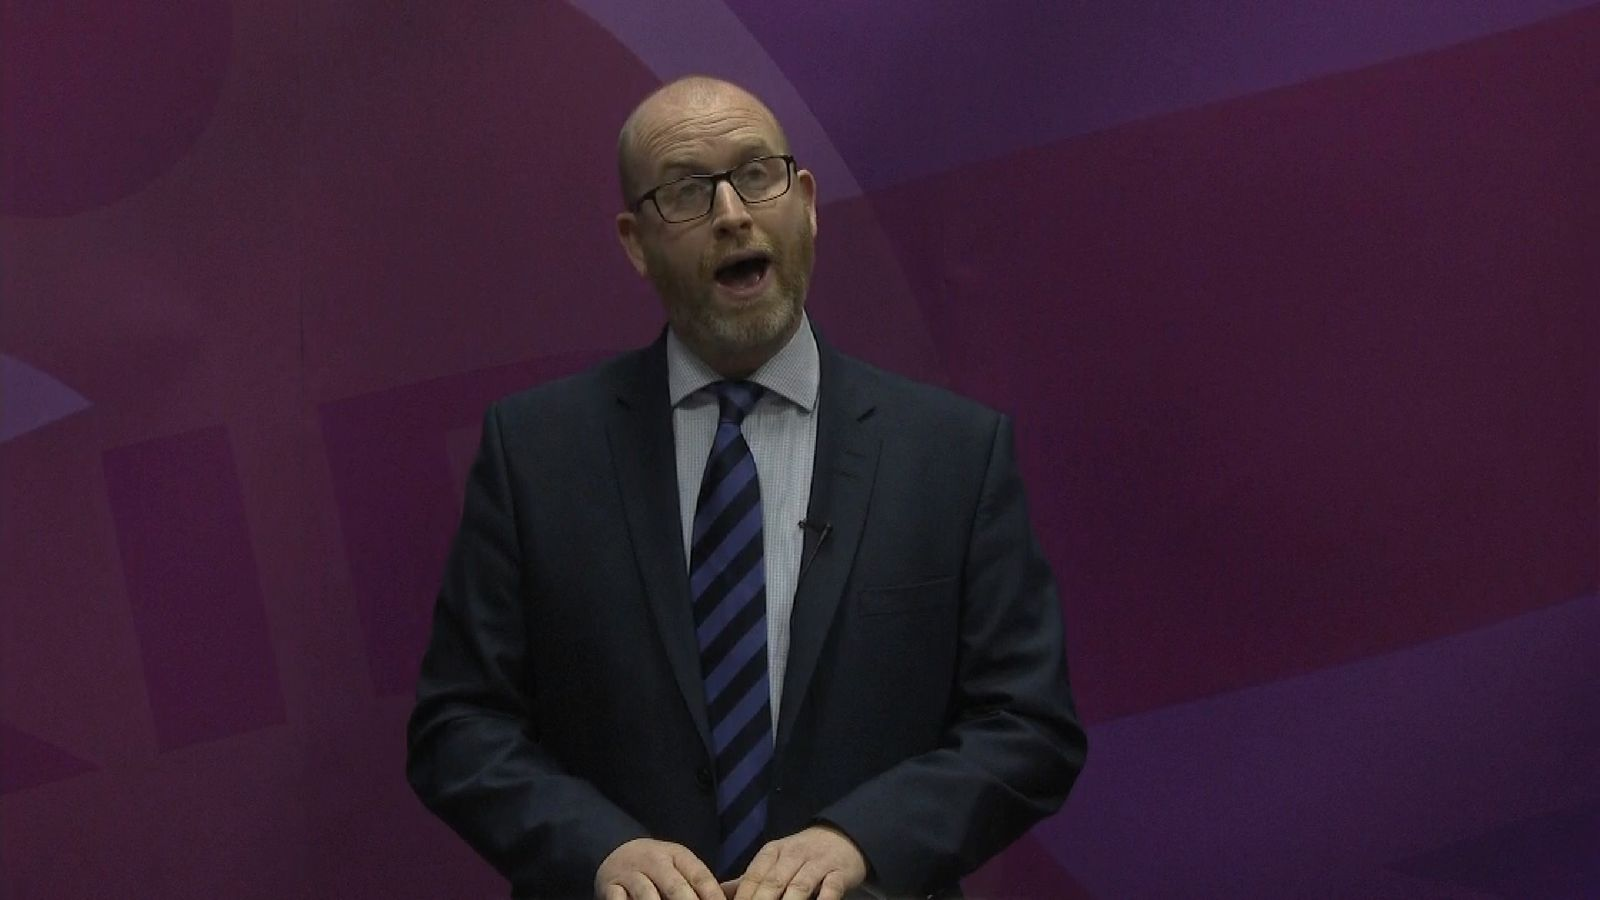 UKIP  leader Paul Nuttall is running to become MP